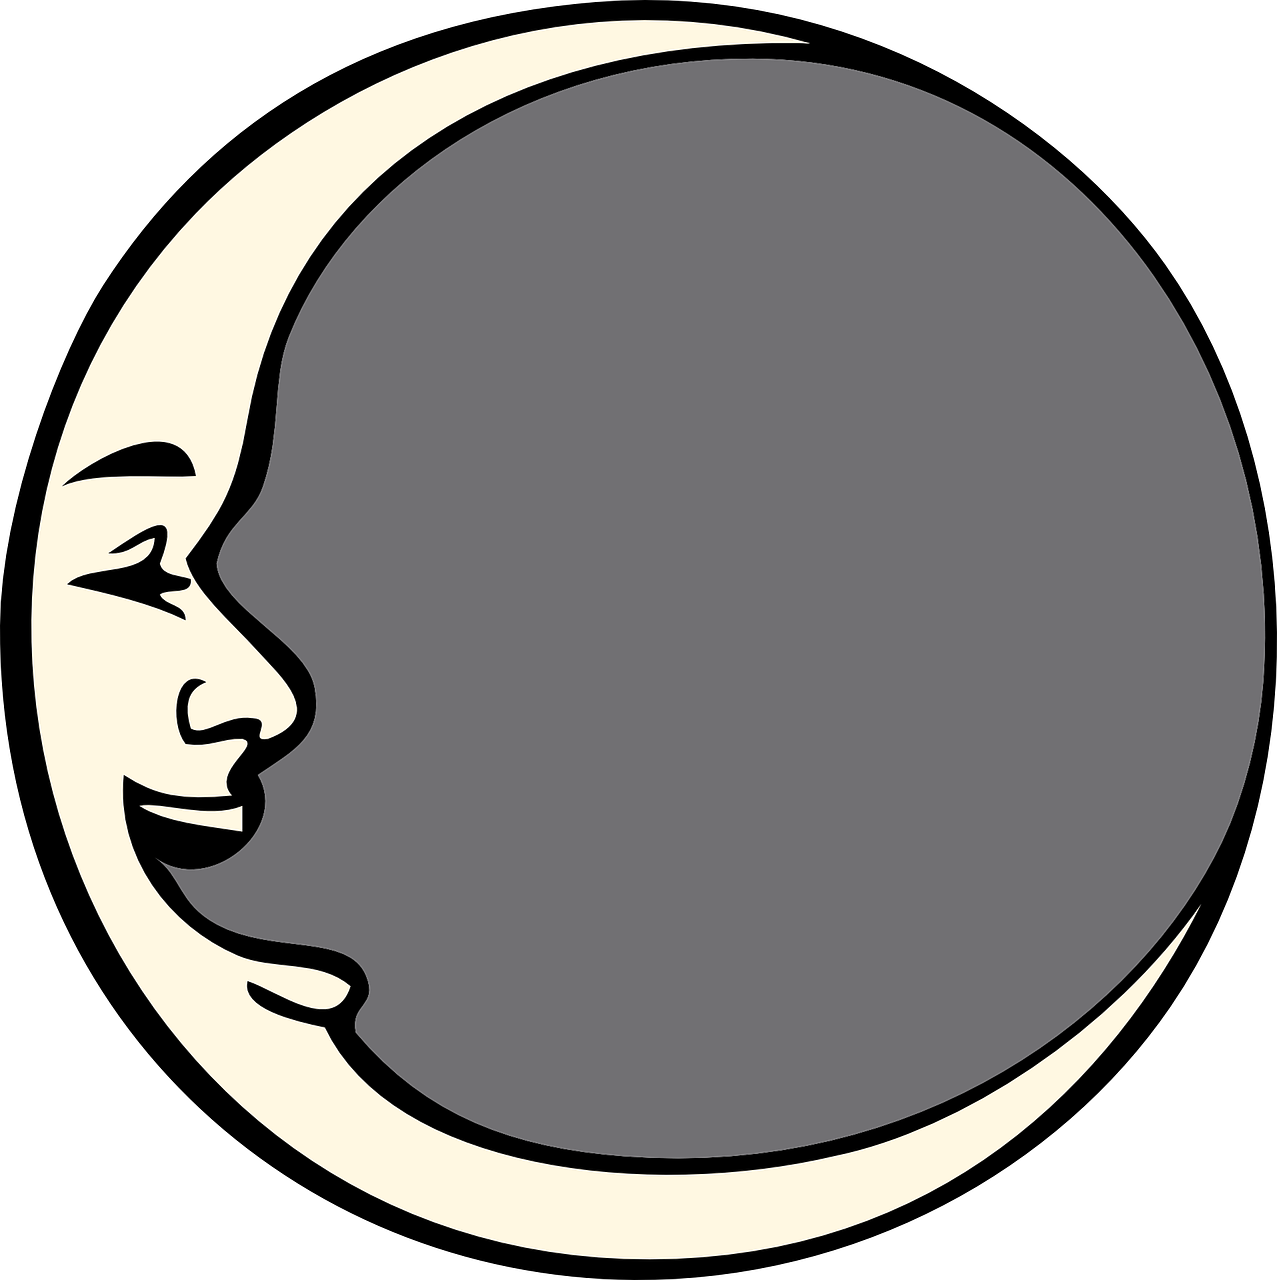 moon man face free photo